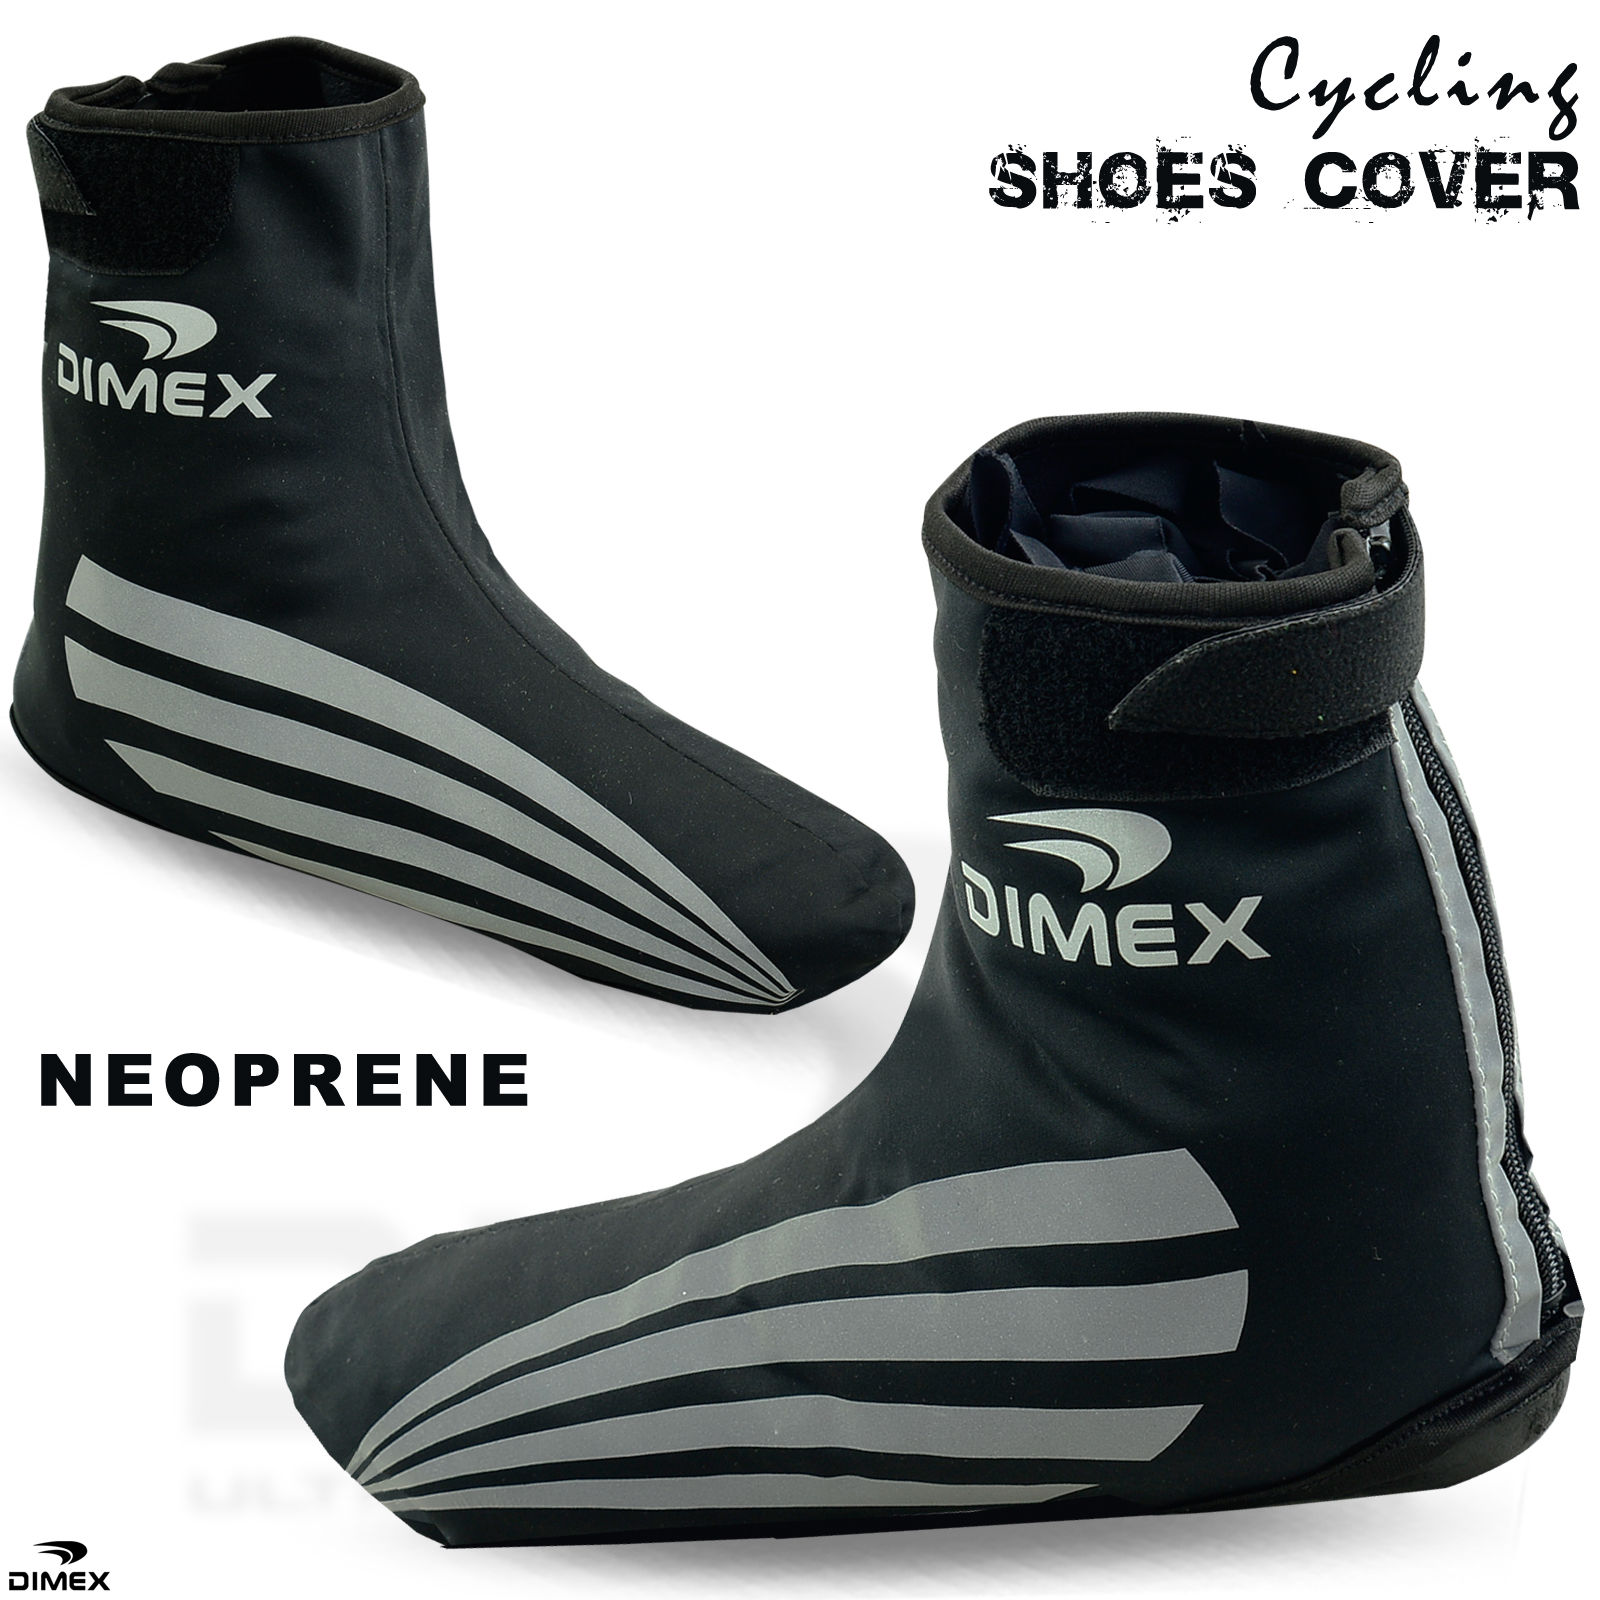 Cycling Shoe Cover Windproof Softshell Water Resistant Outdoor Bicycle Overshoe